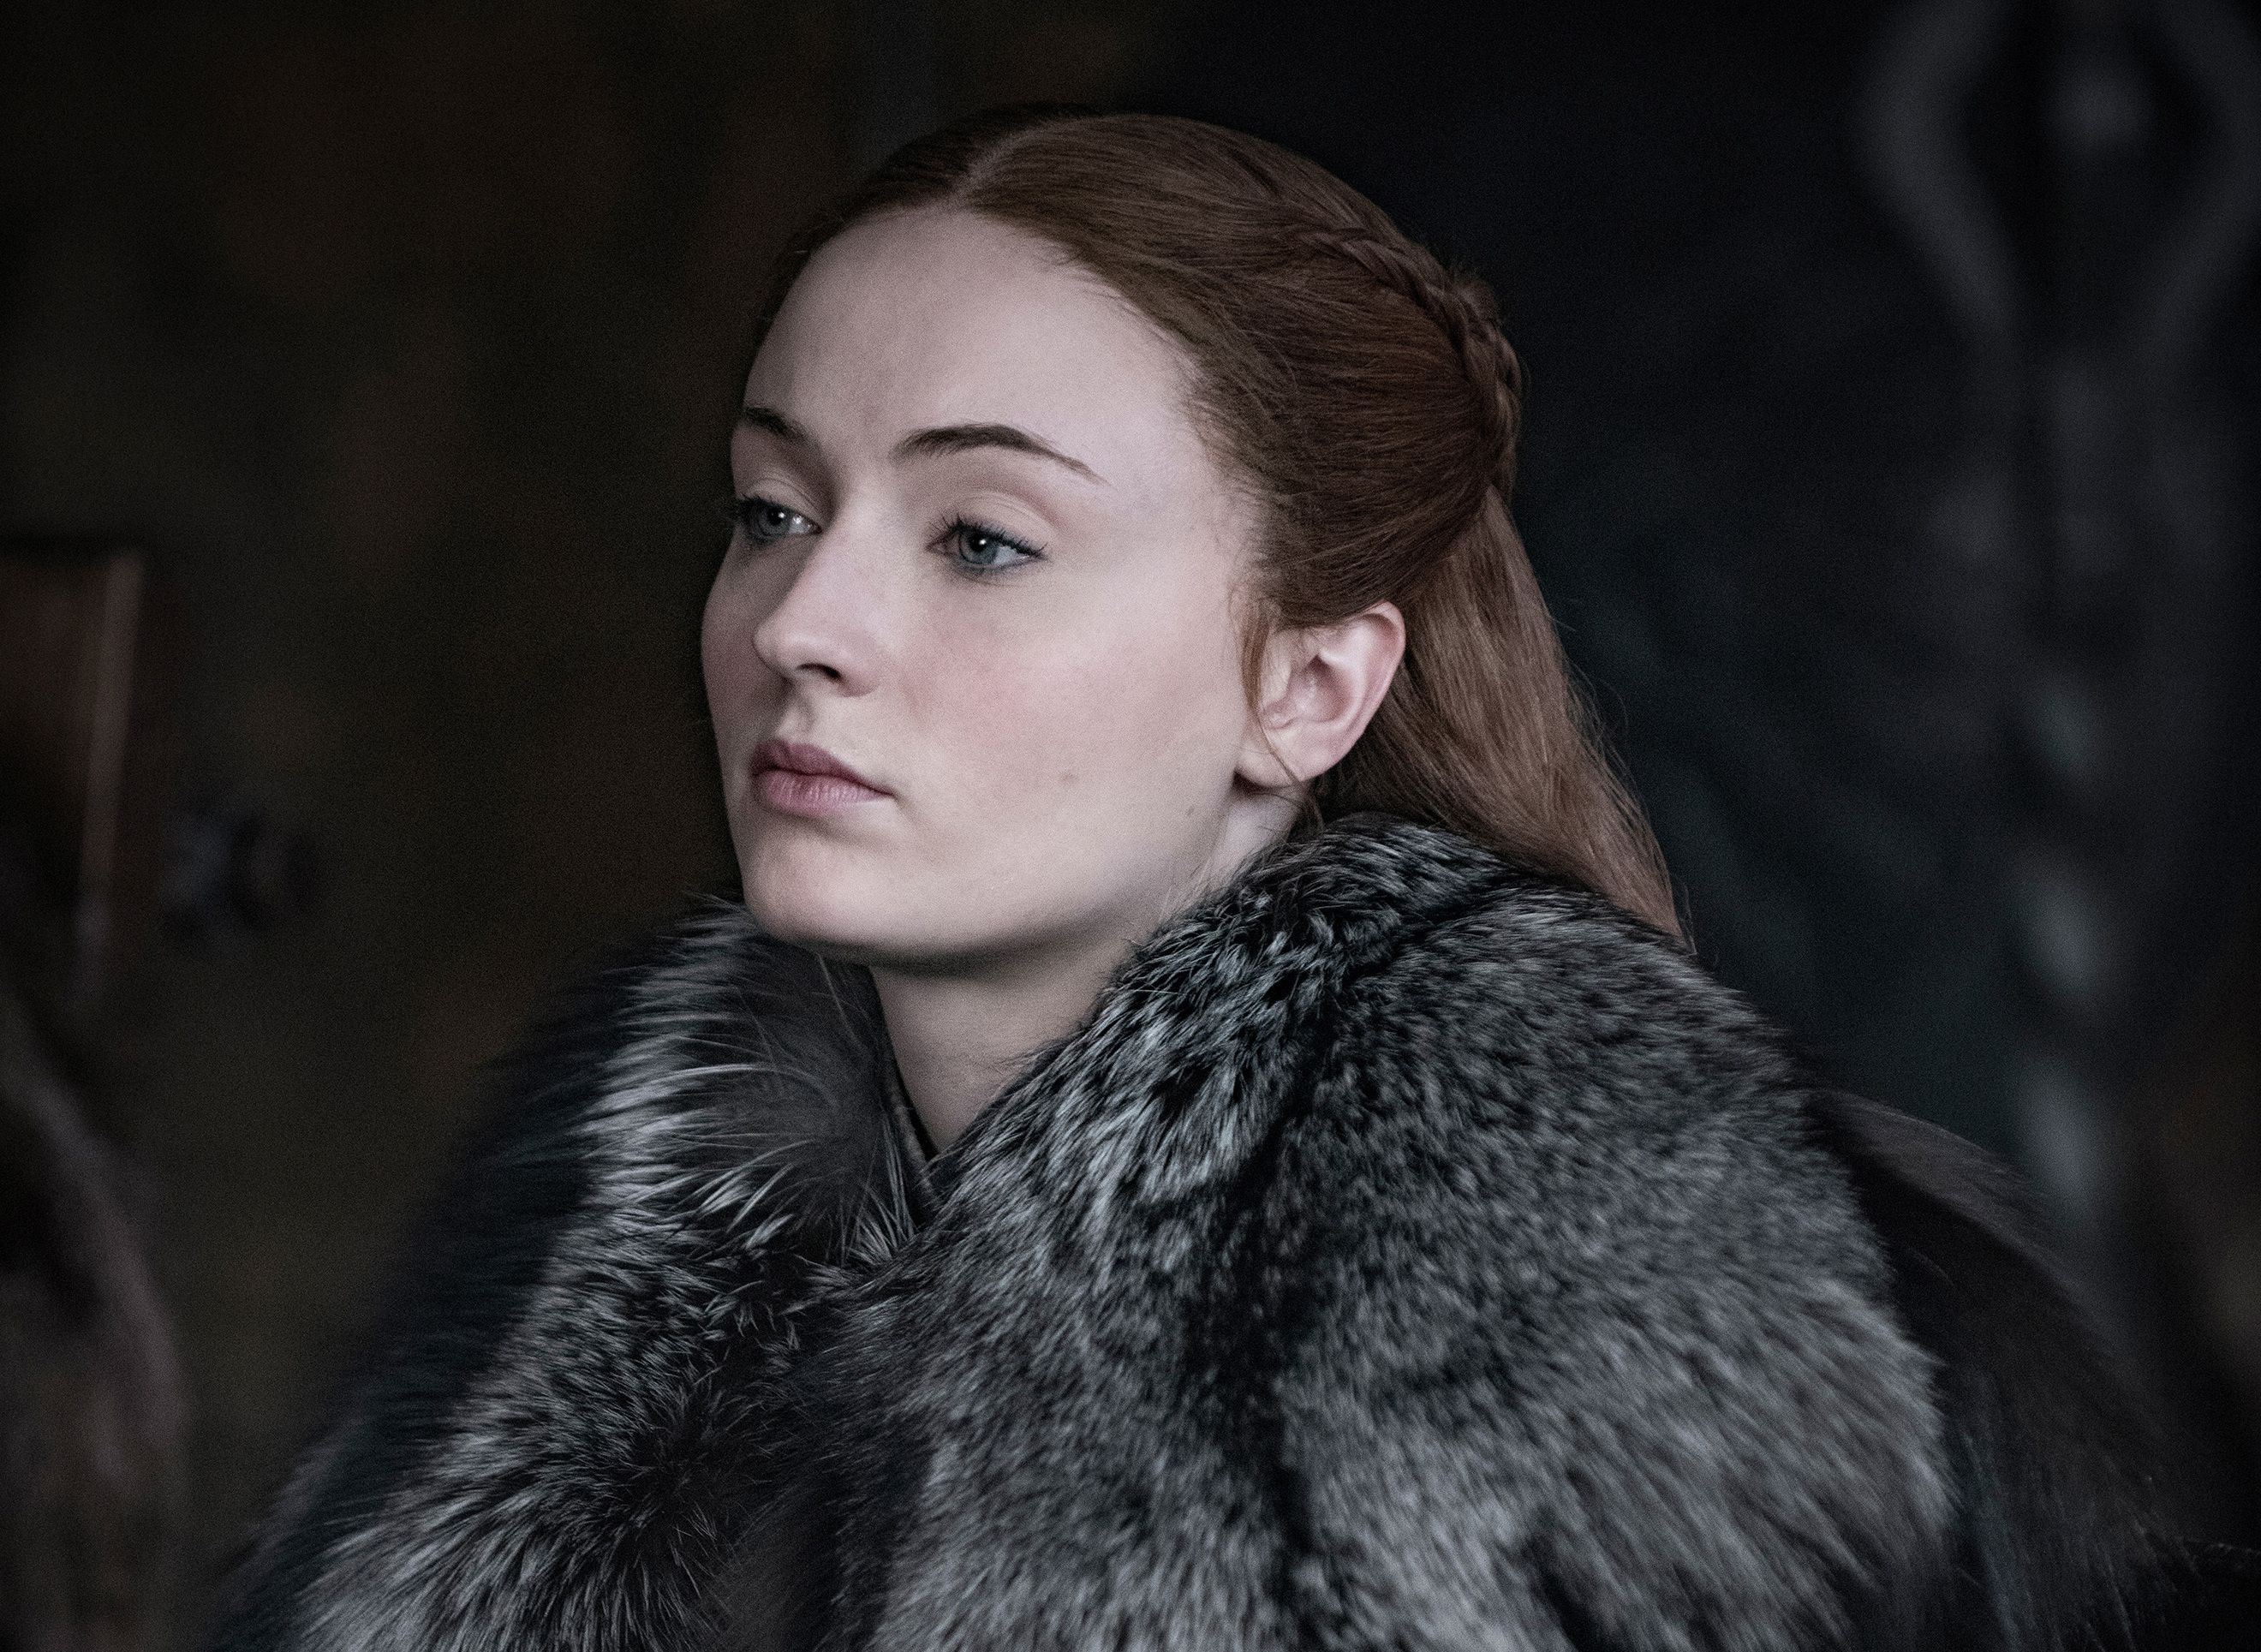 Game Of Thrones Season 8 Premiere Who Will Live And Who Will Die What To Know Ahead Of The Icy Fiery And Bloody Last Season Nj Com